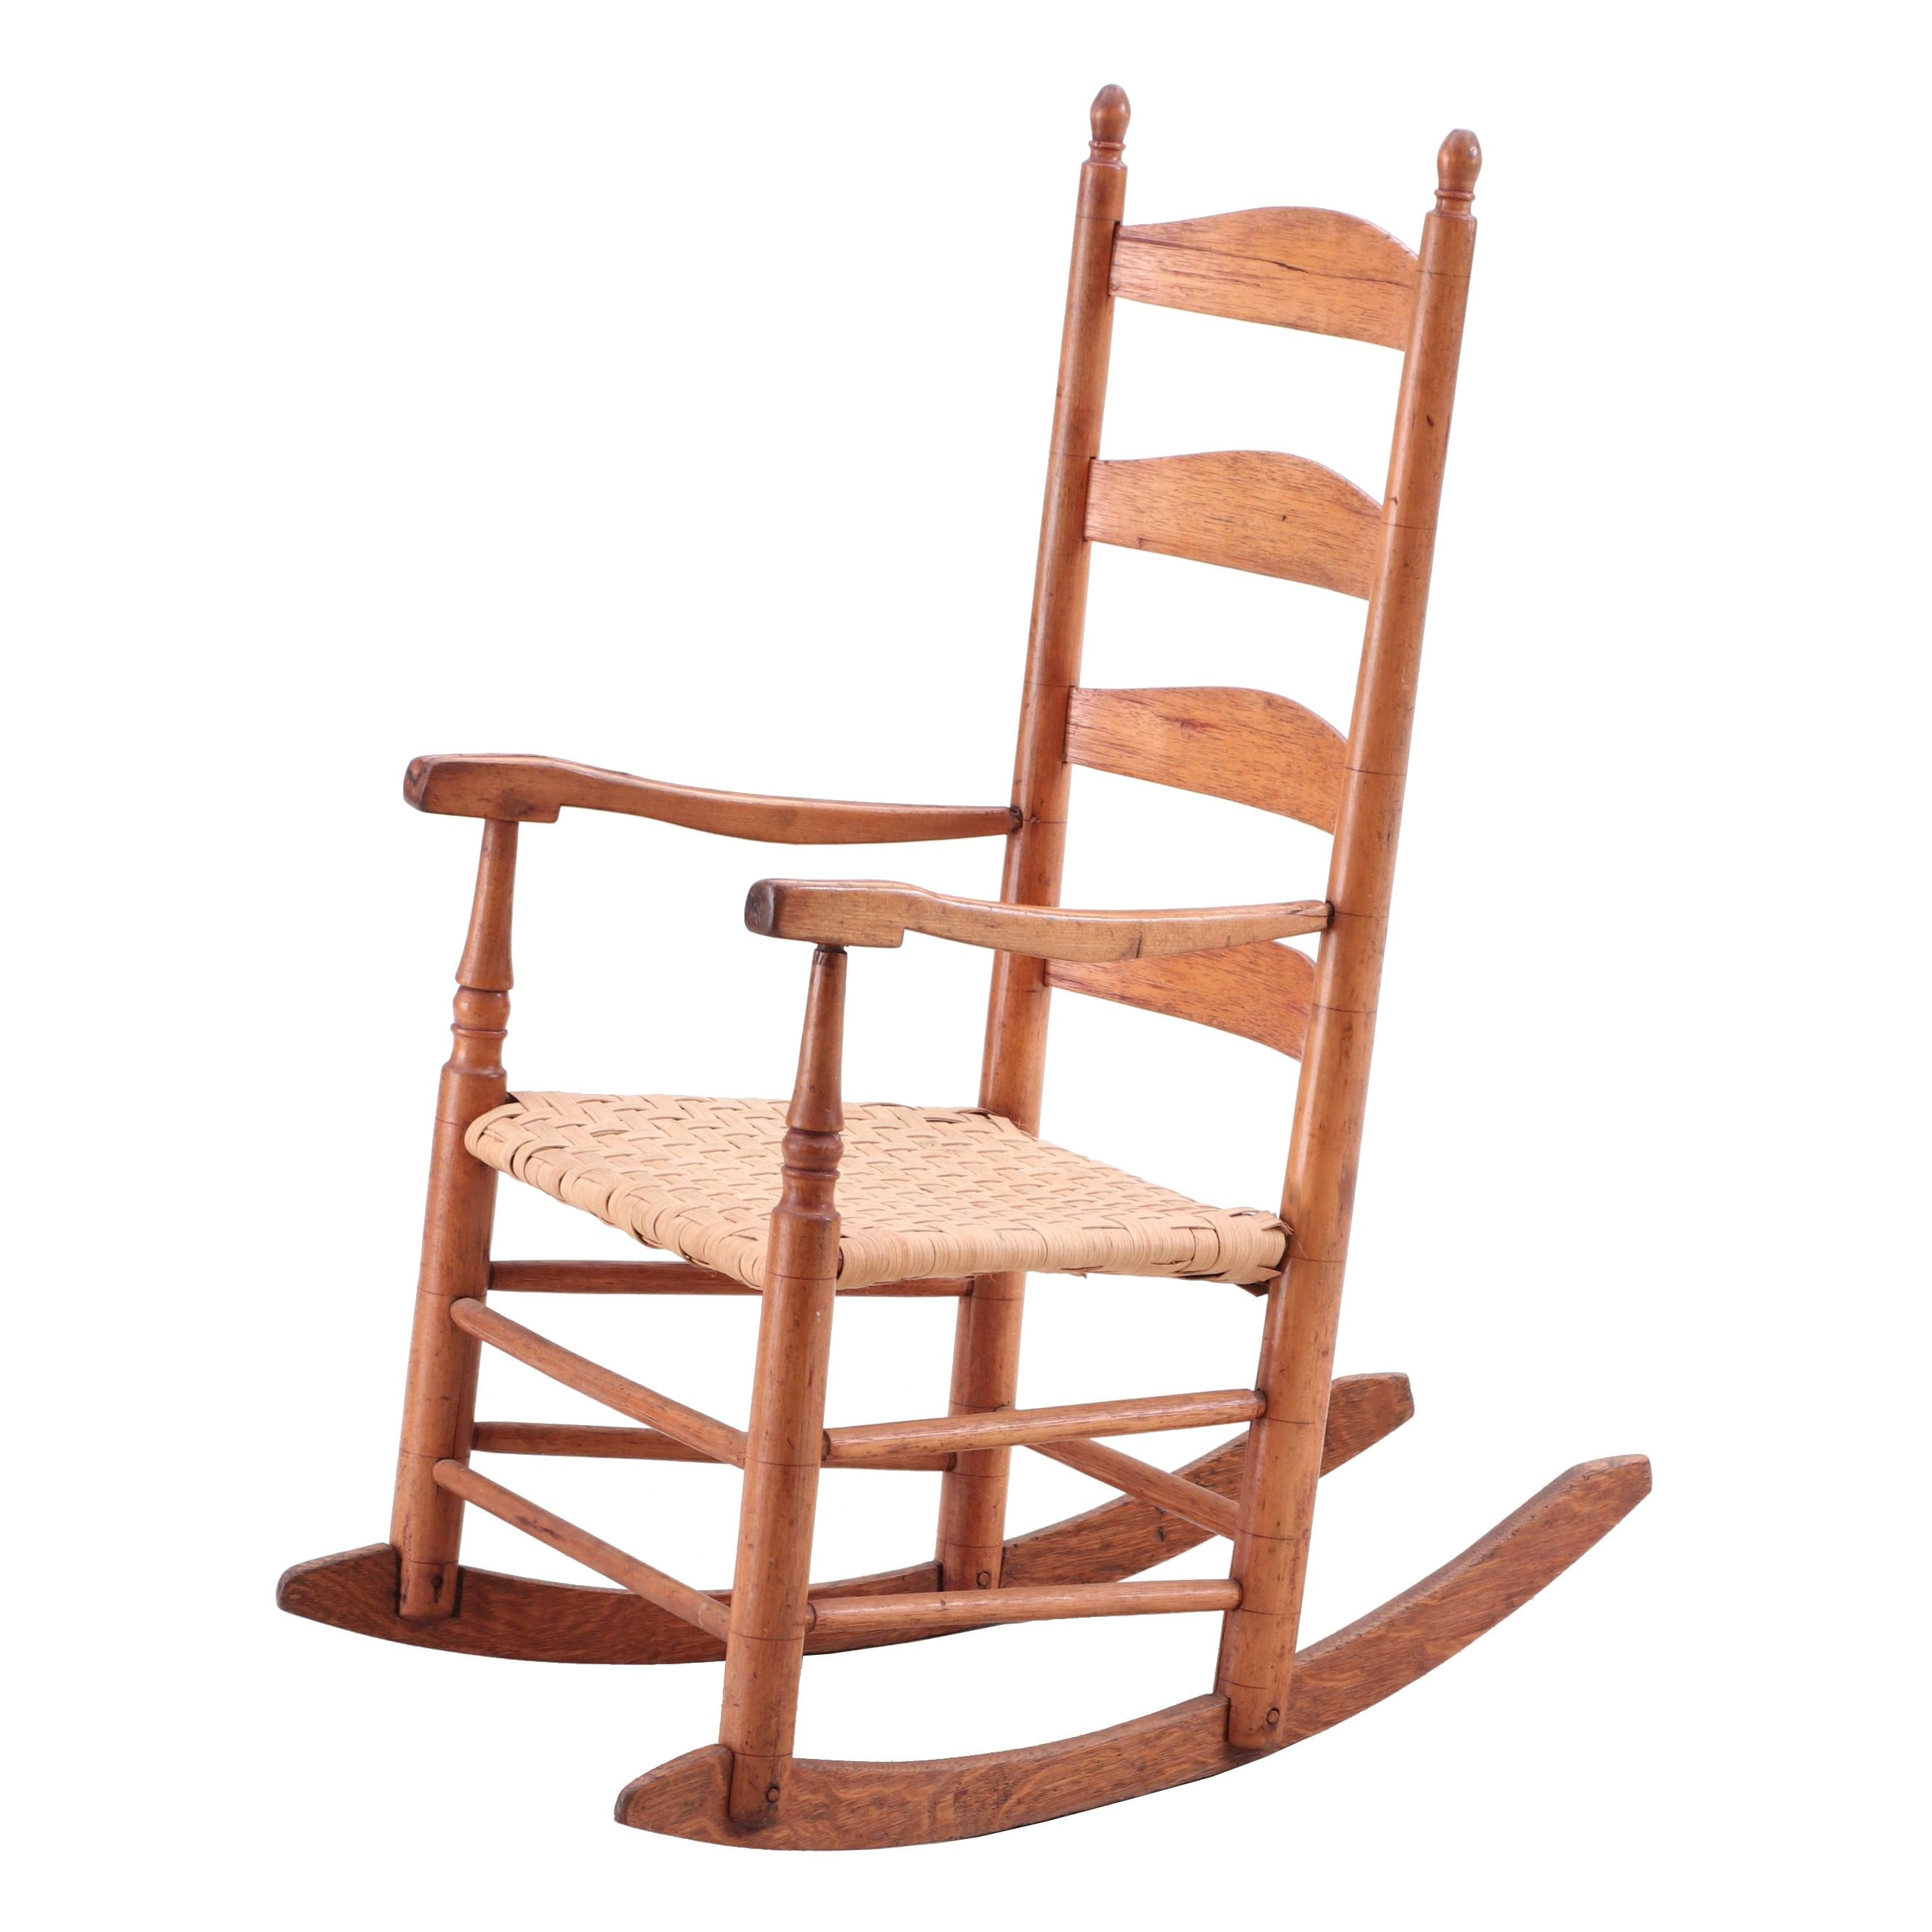 Hickory Rocking Chair with Splint Woven Seat, Likely New England, Circa 1840